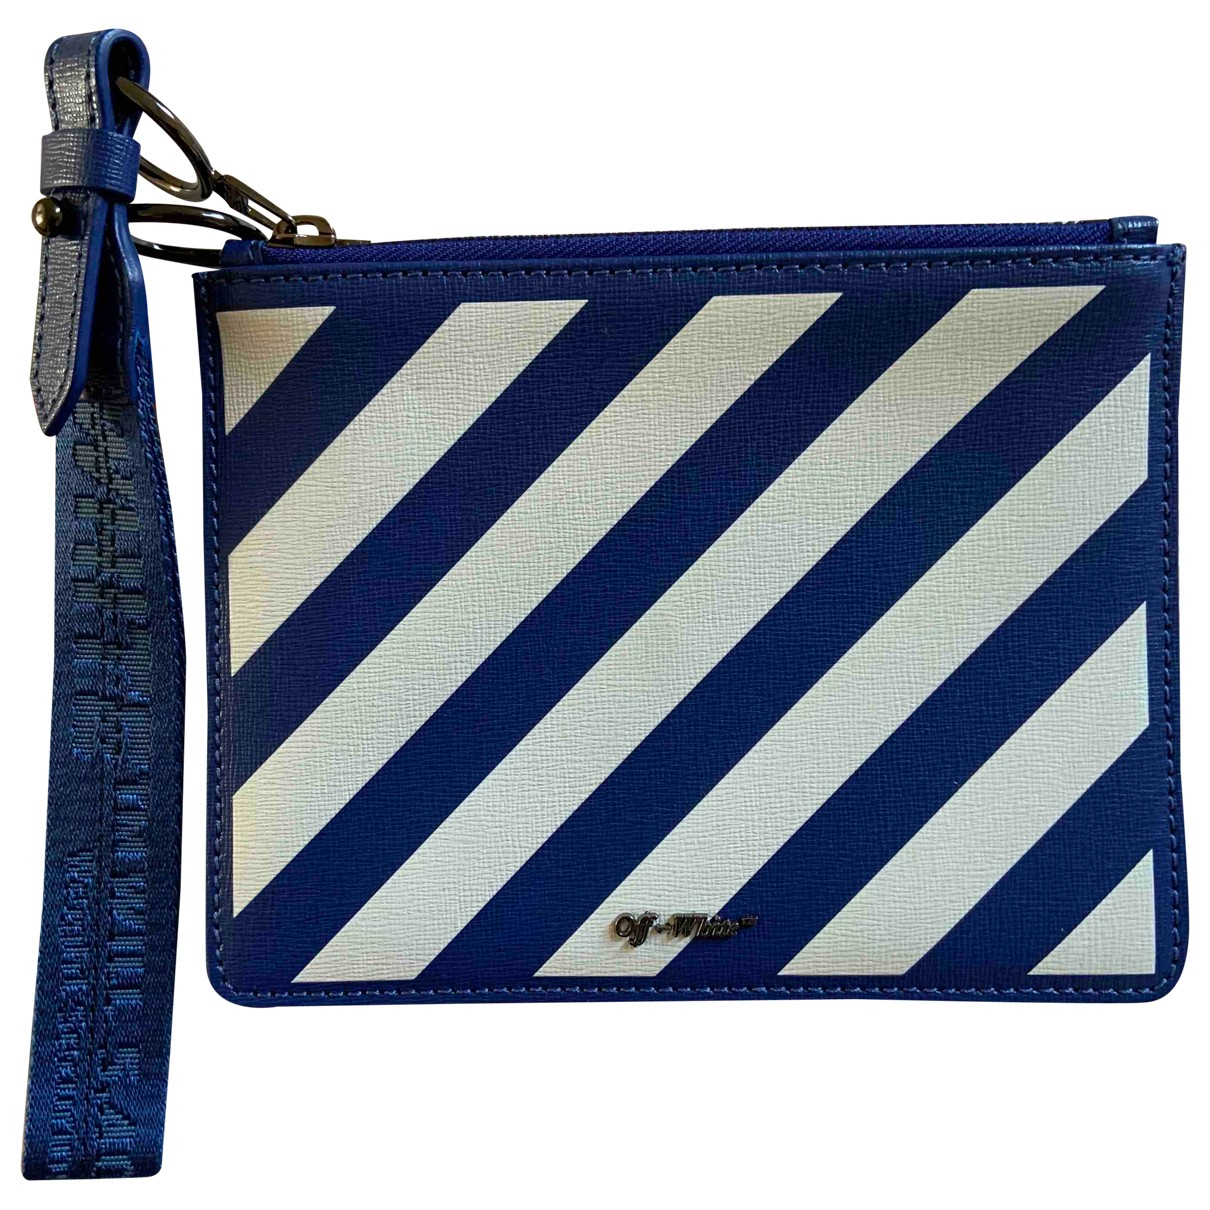 Off-white \N Clutch in  Blau Leder